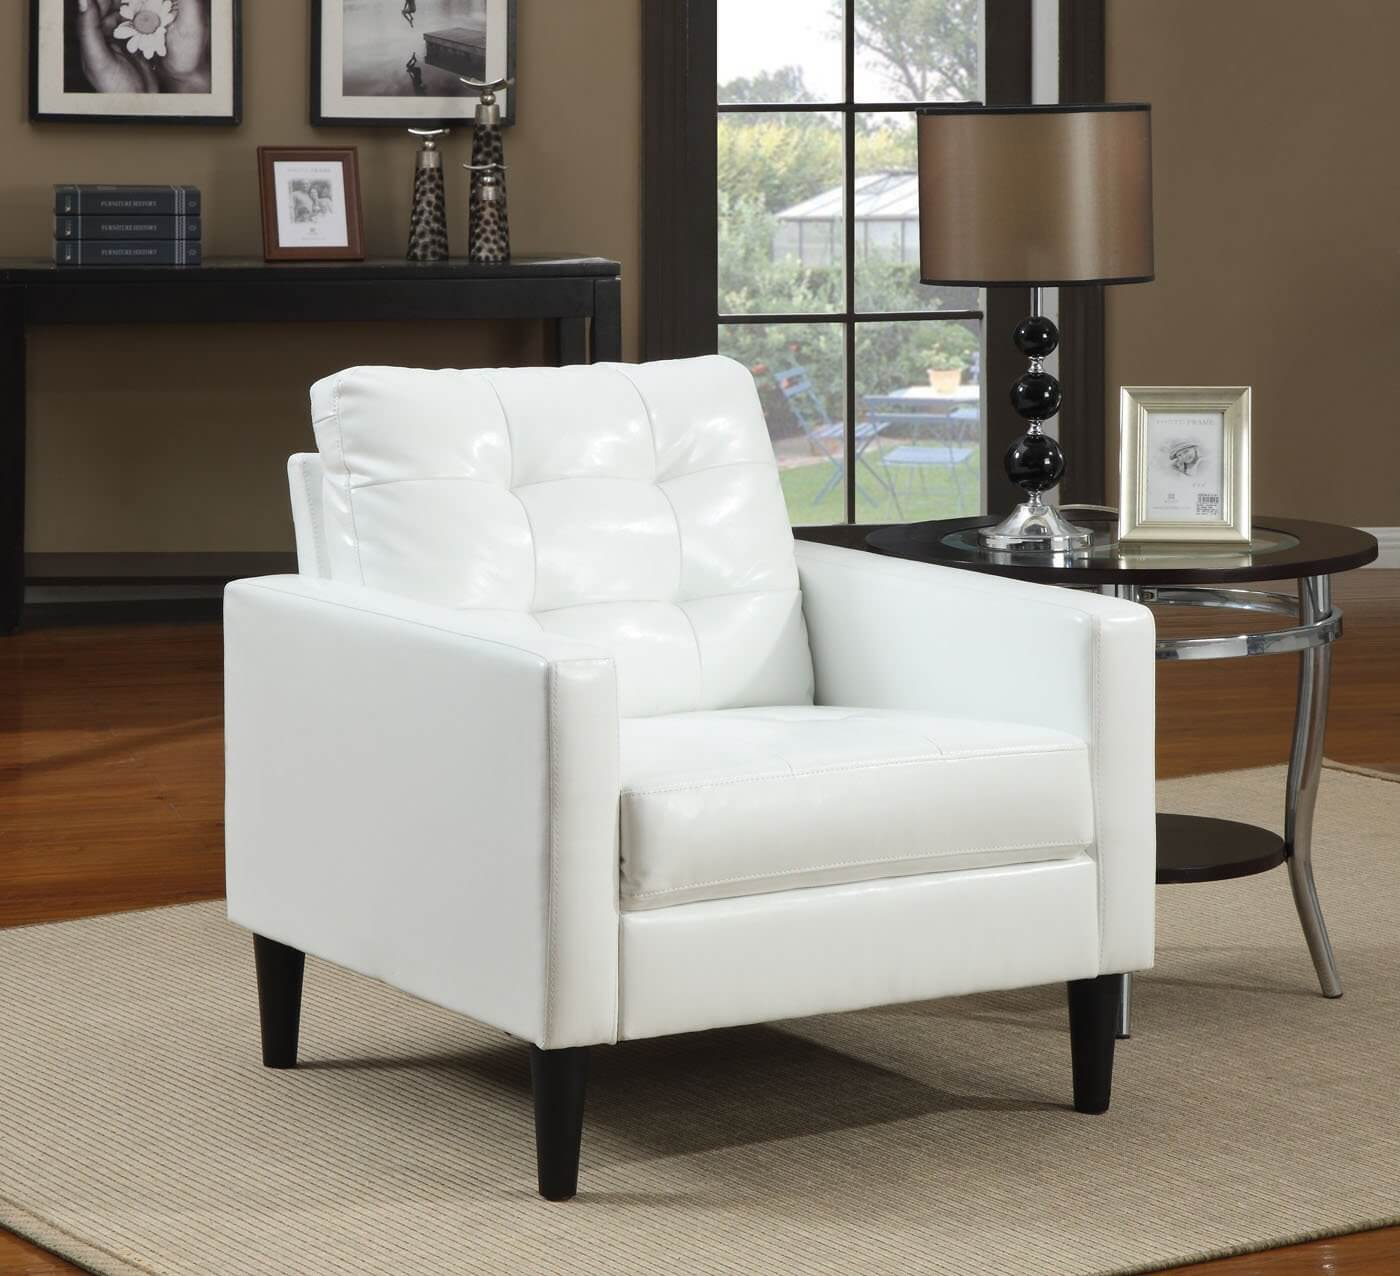 Modern Accent Chairs 37 White Modern Accent Chairs For The Living Room